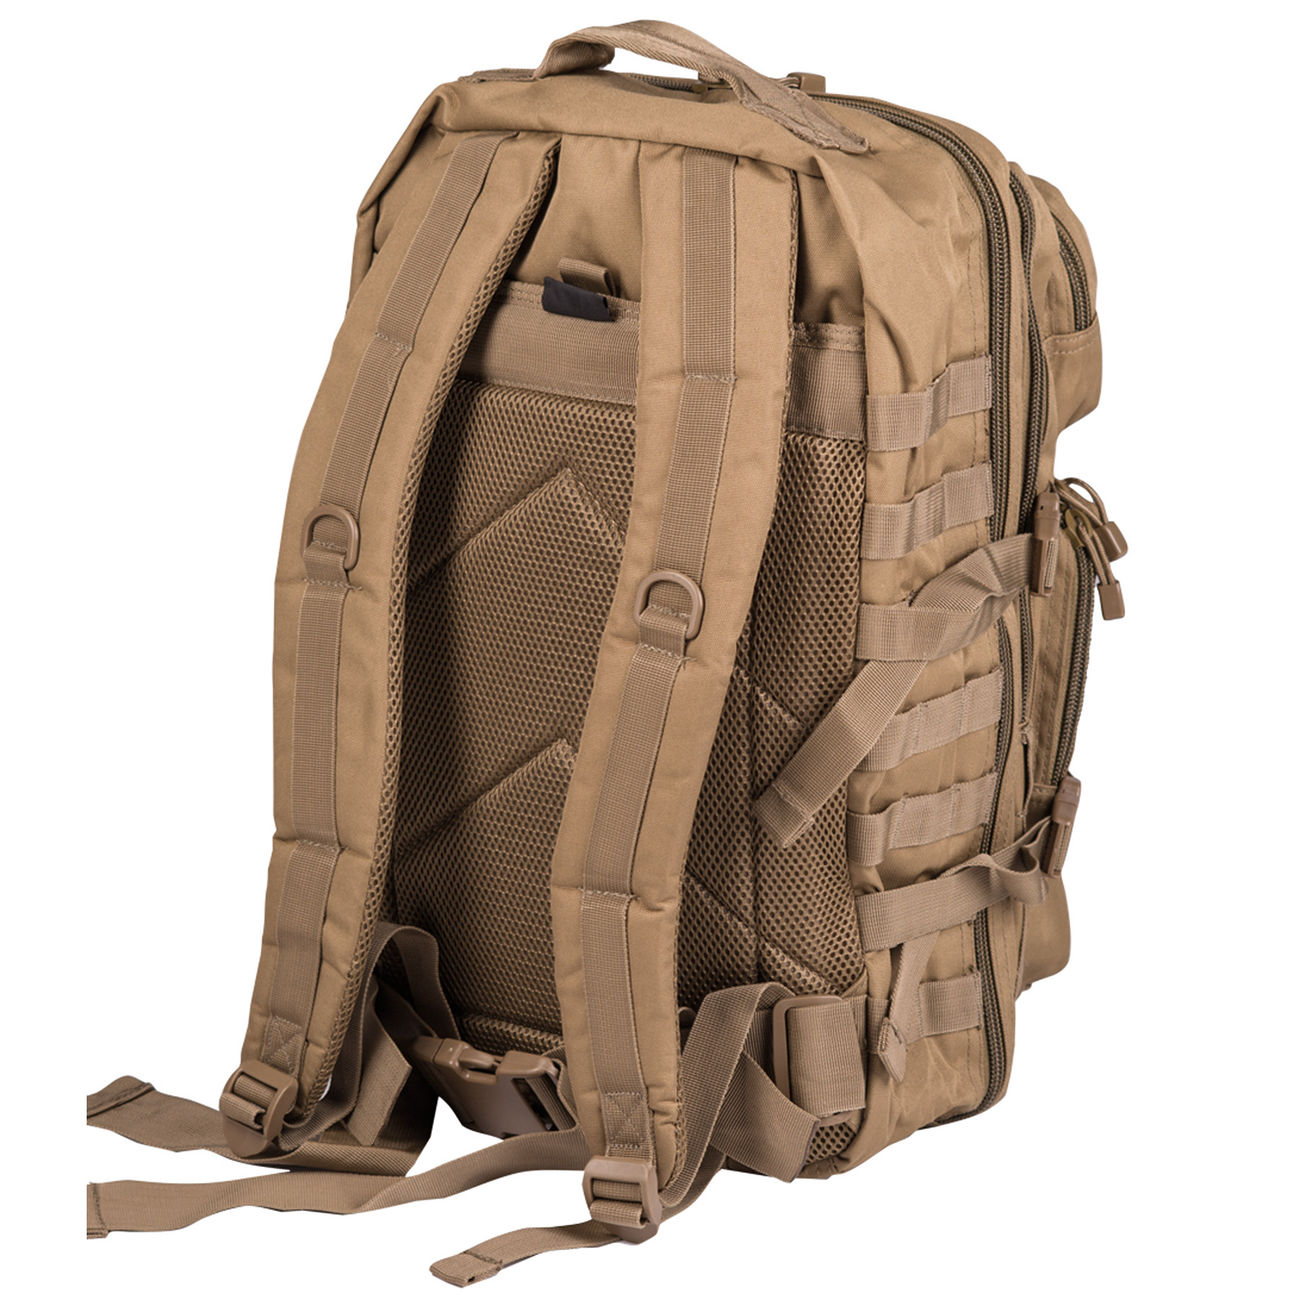 Mil-Tec Rucksack US Assault Pack LG 40 Liter coyote 1